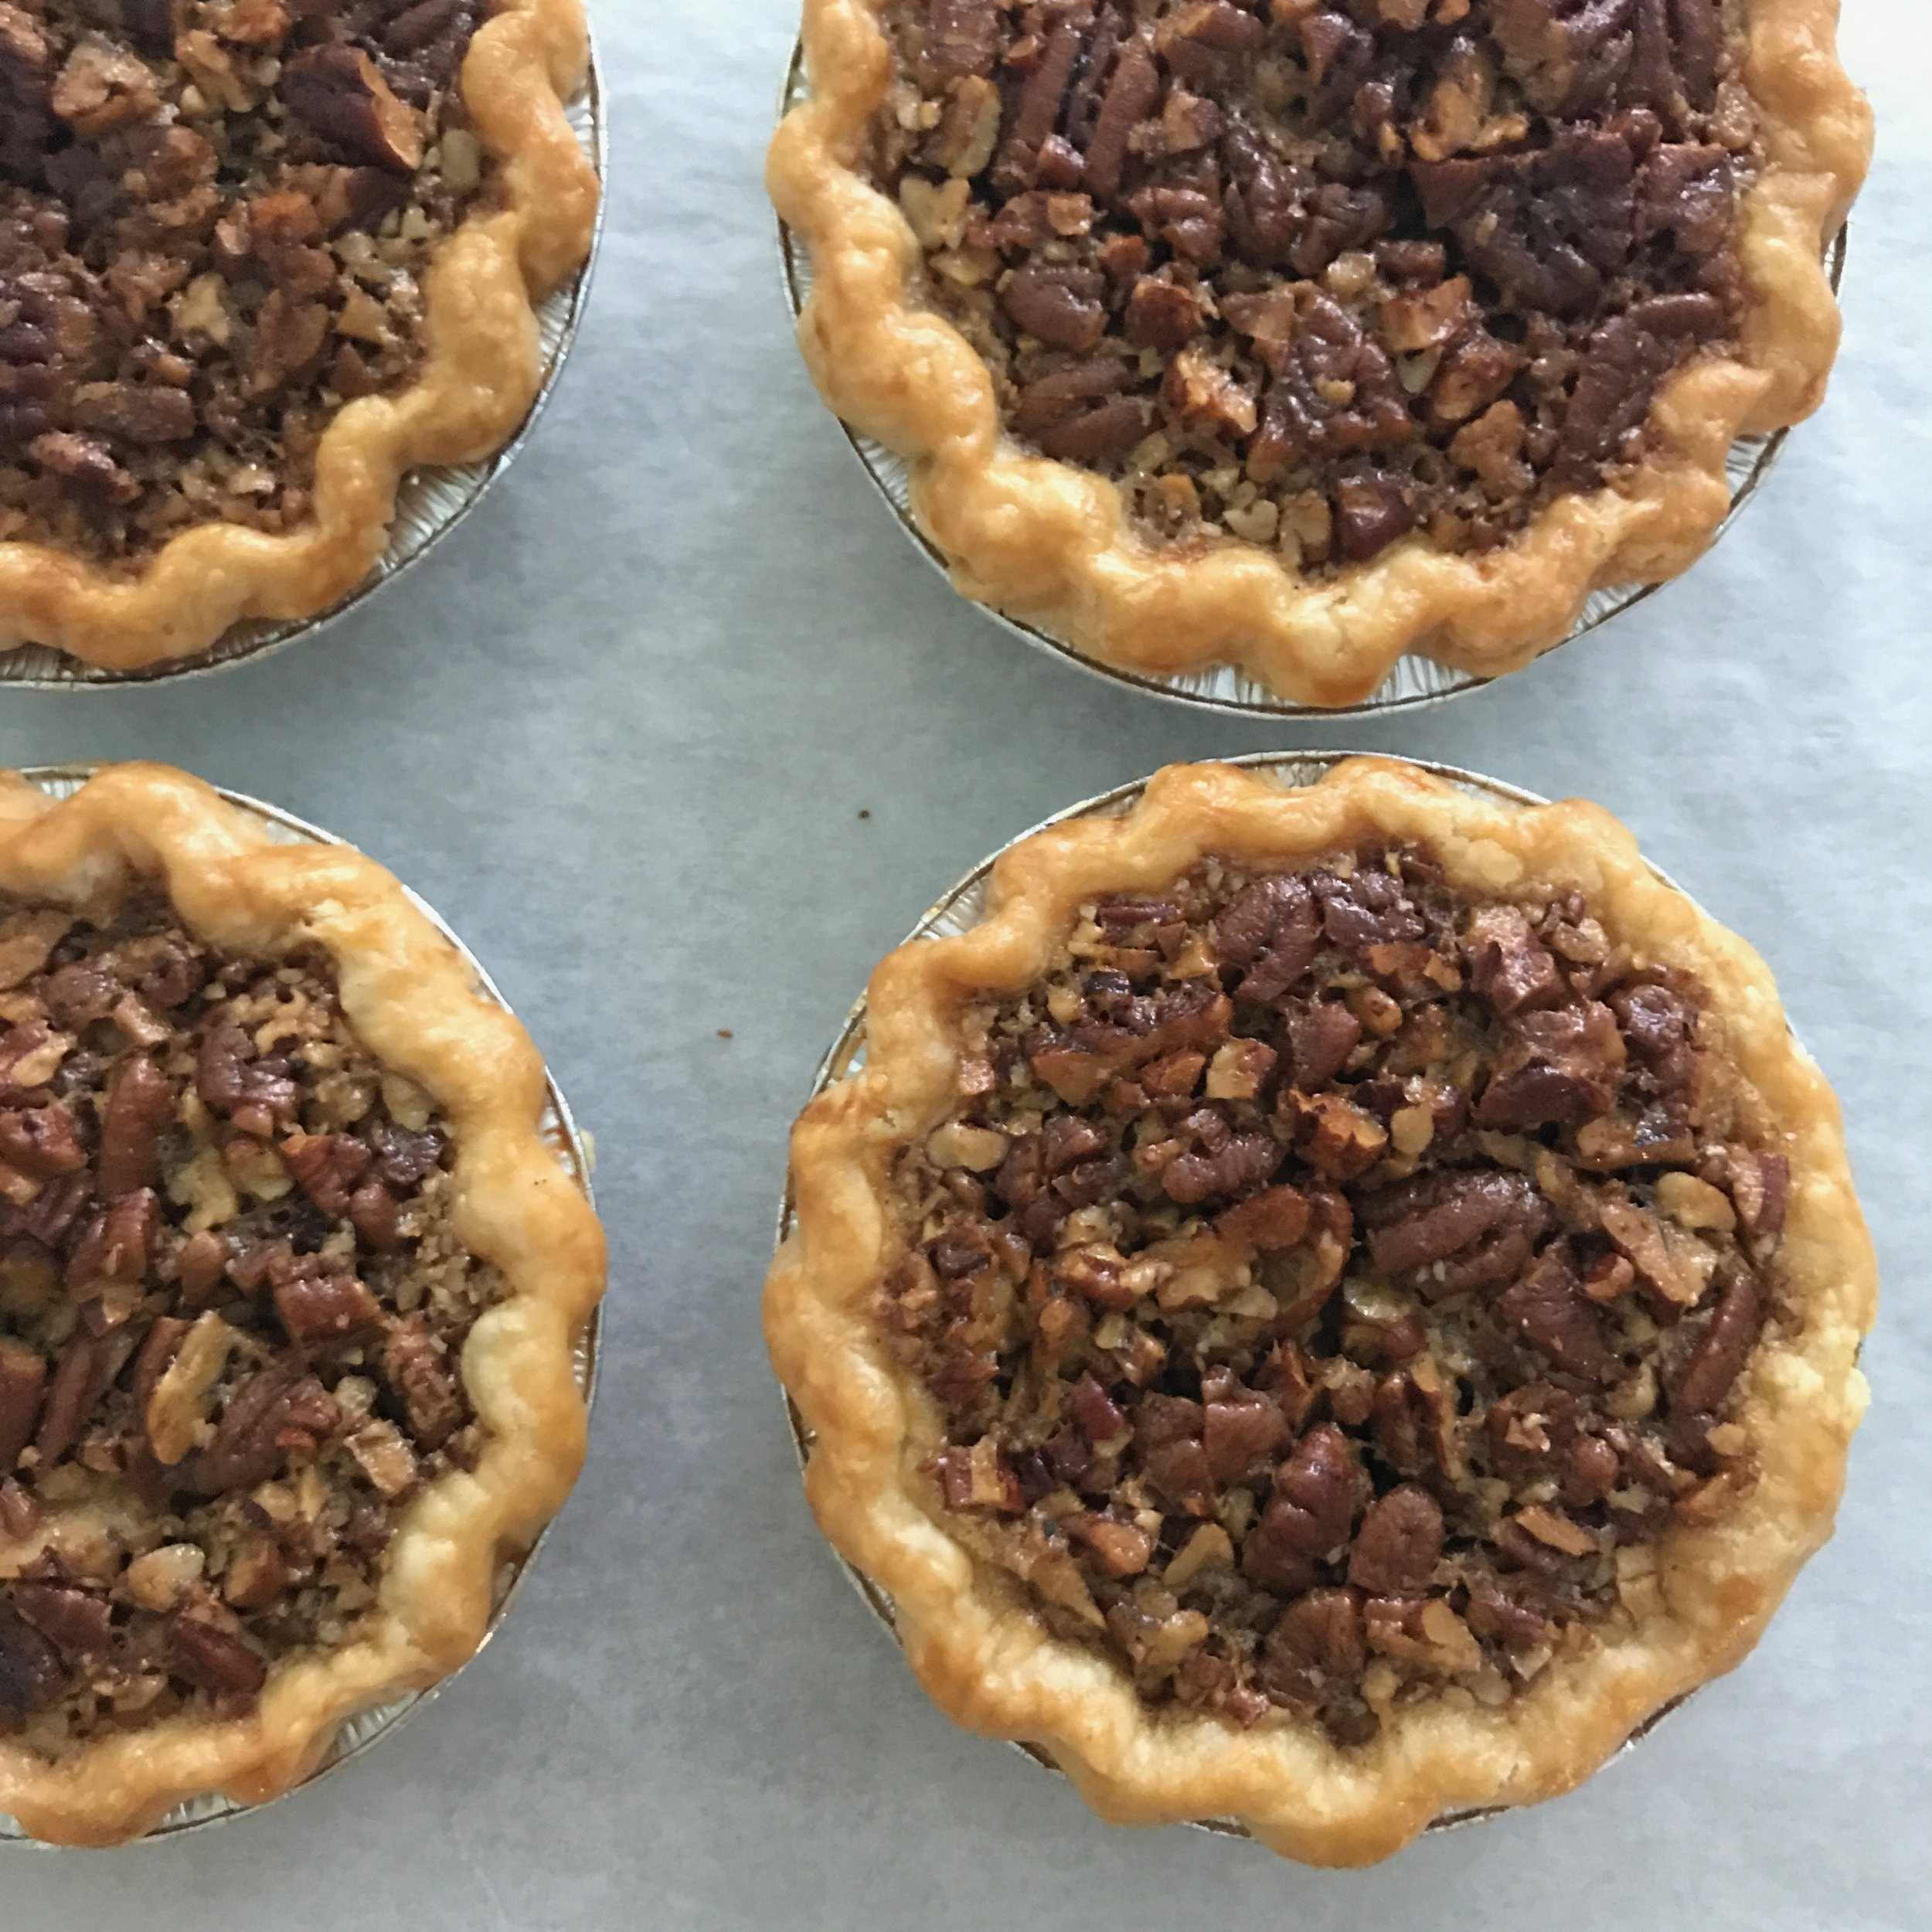 Our pies are seasonal so you get the best, freshest ingredients with the fullest flavor